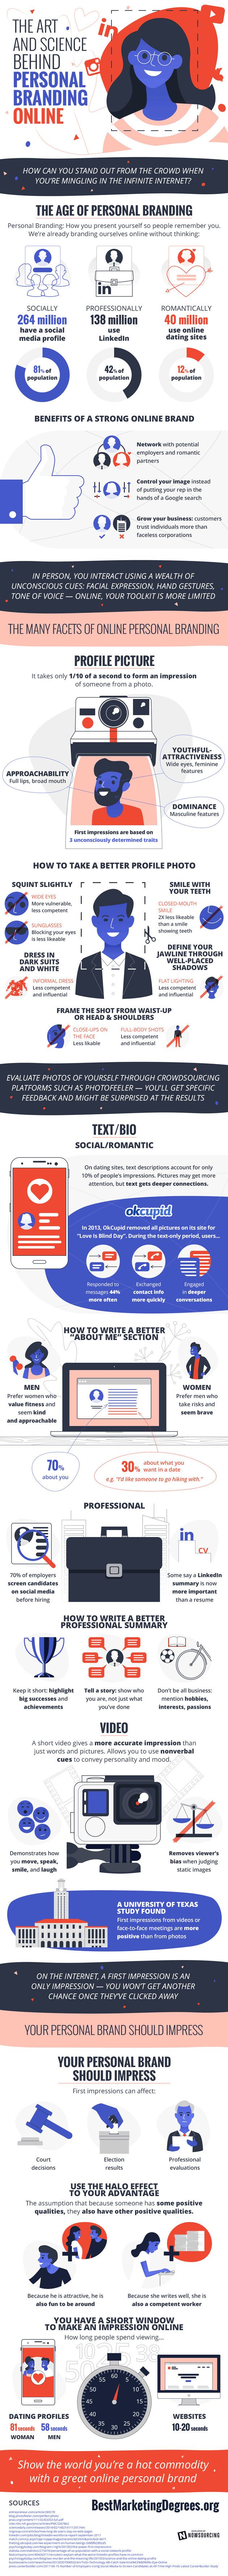 The Art And Science Of Personal Branding Online Infographic